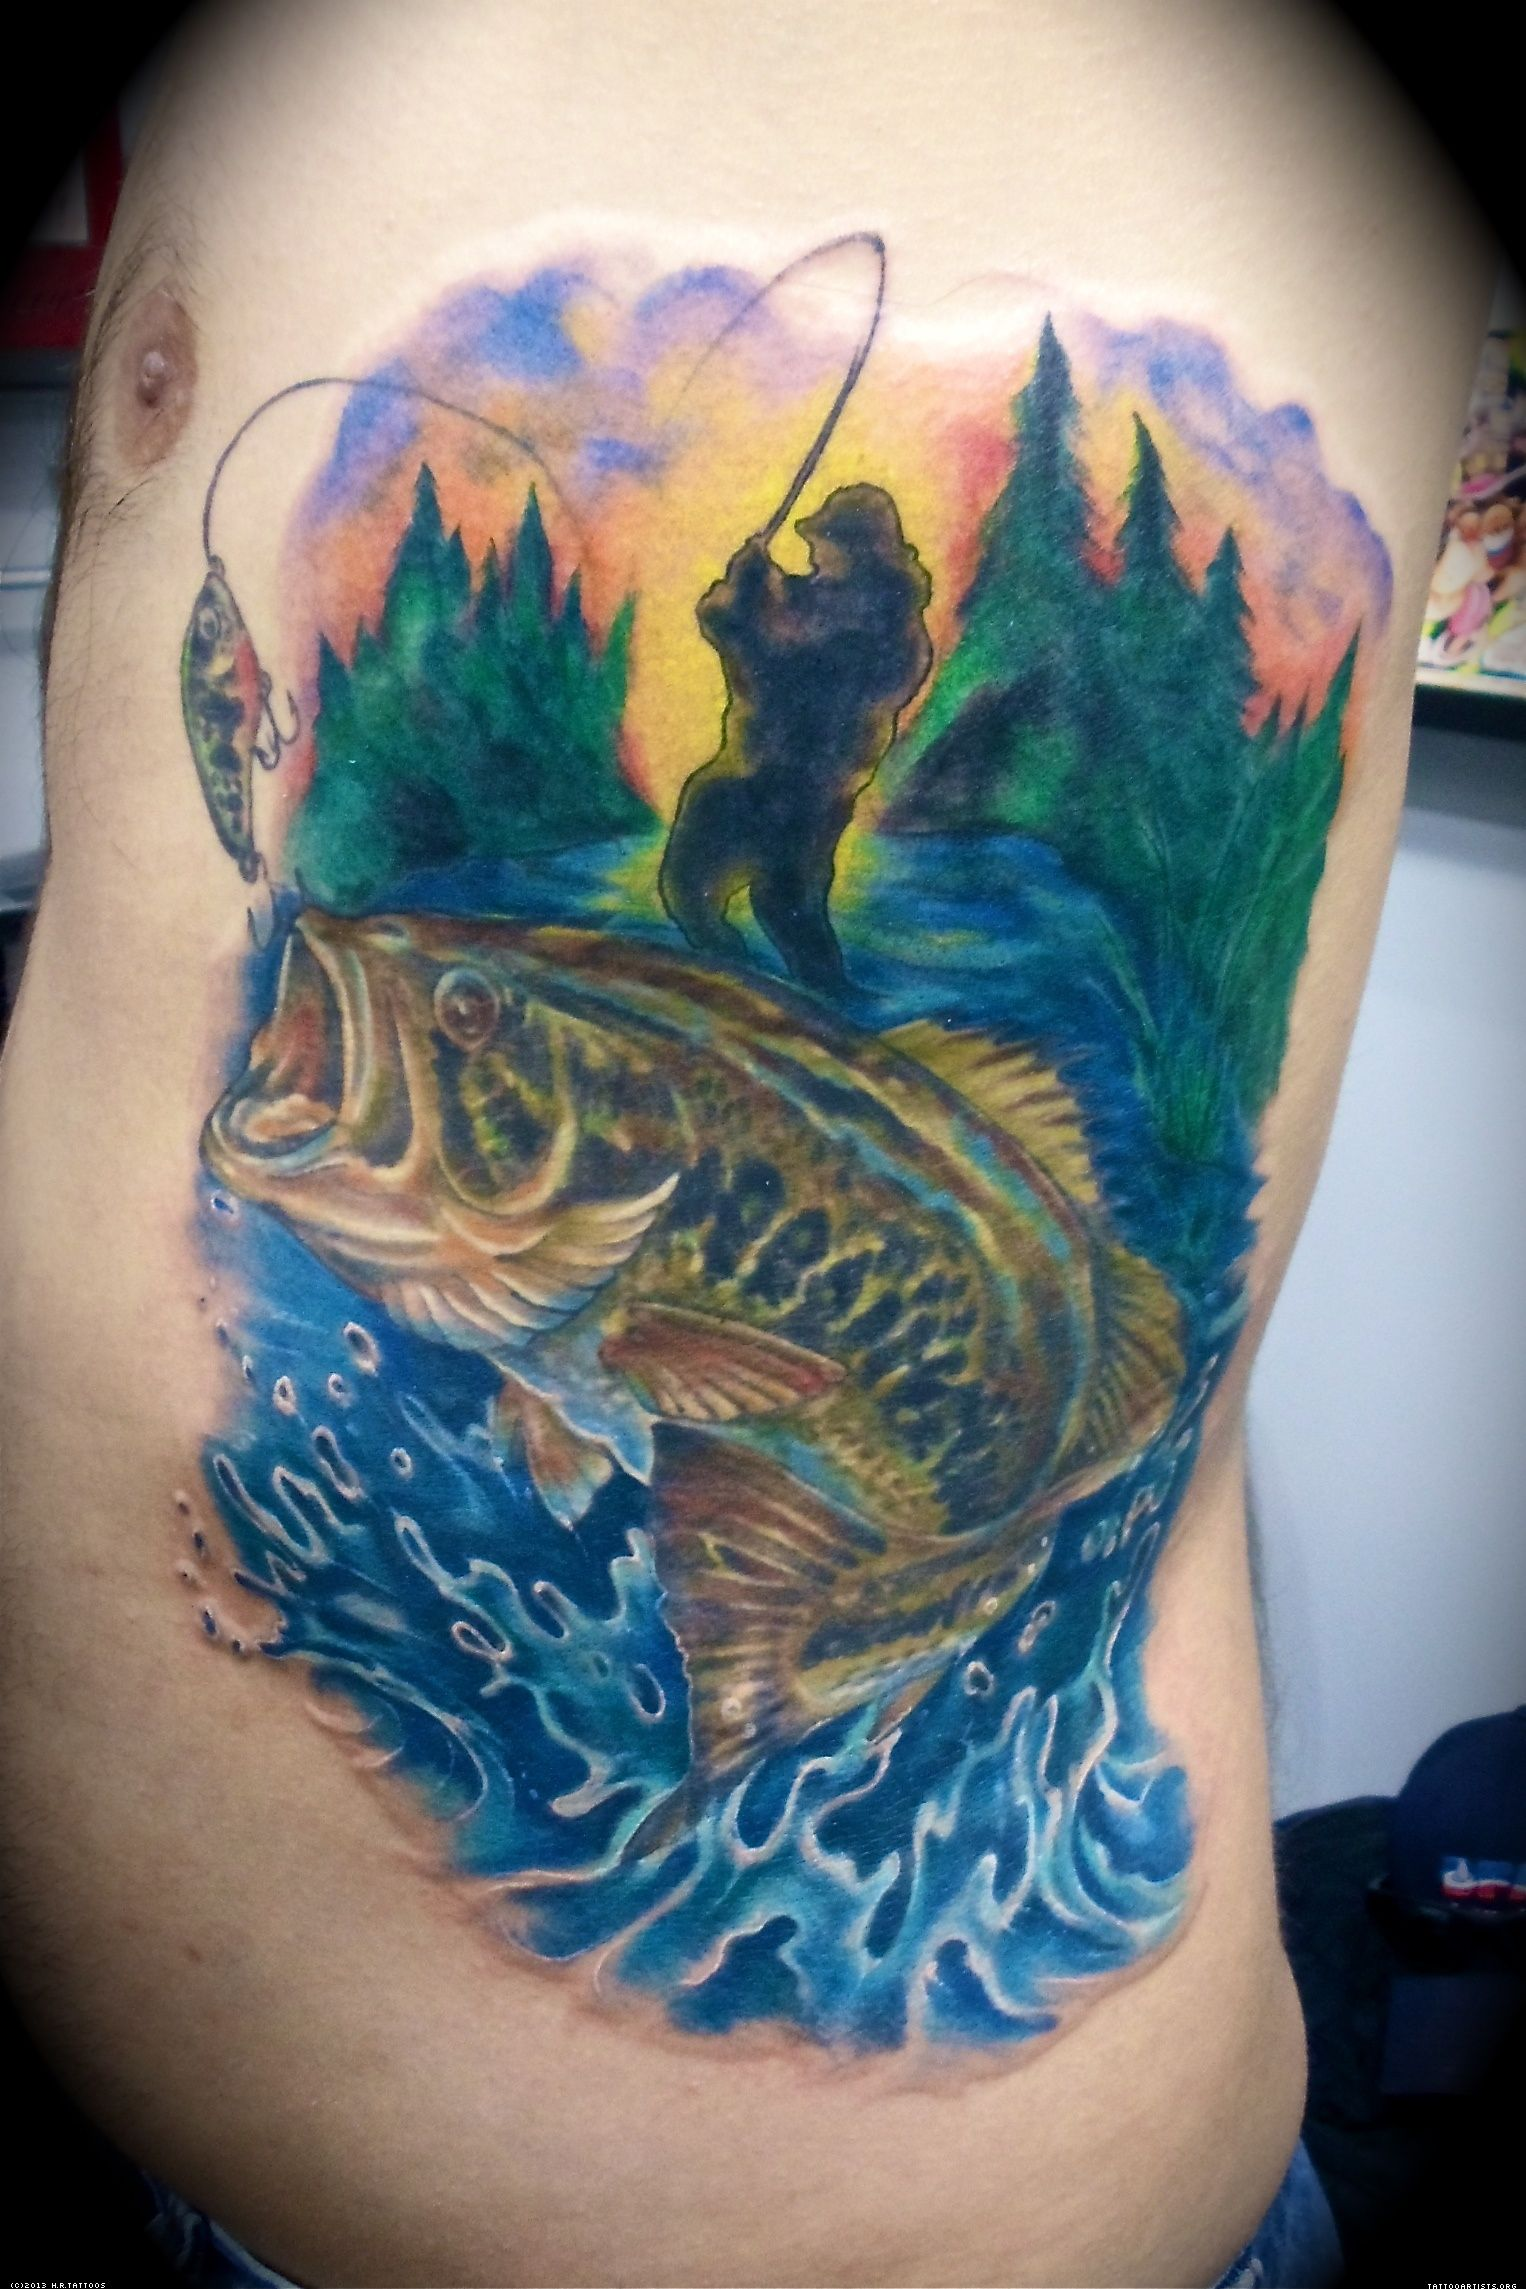 Fishing tattoos bass fish tattoo tattoos for Back mural tattoo designs